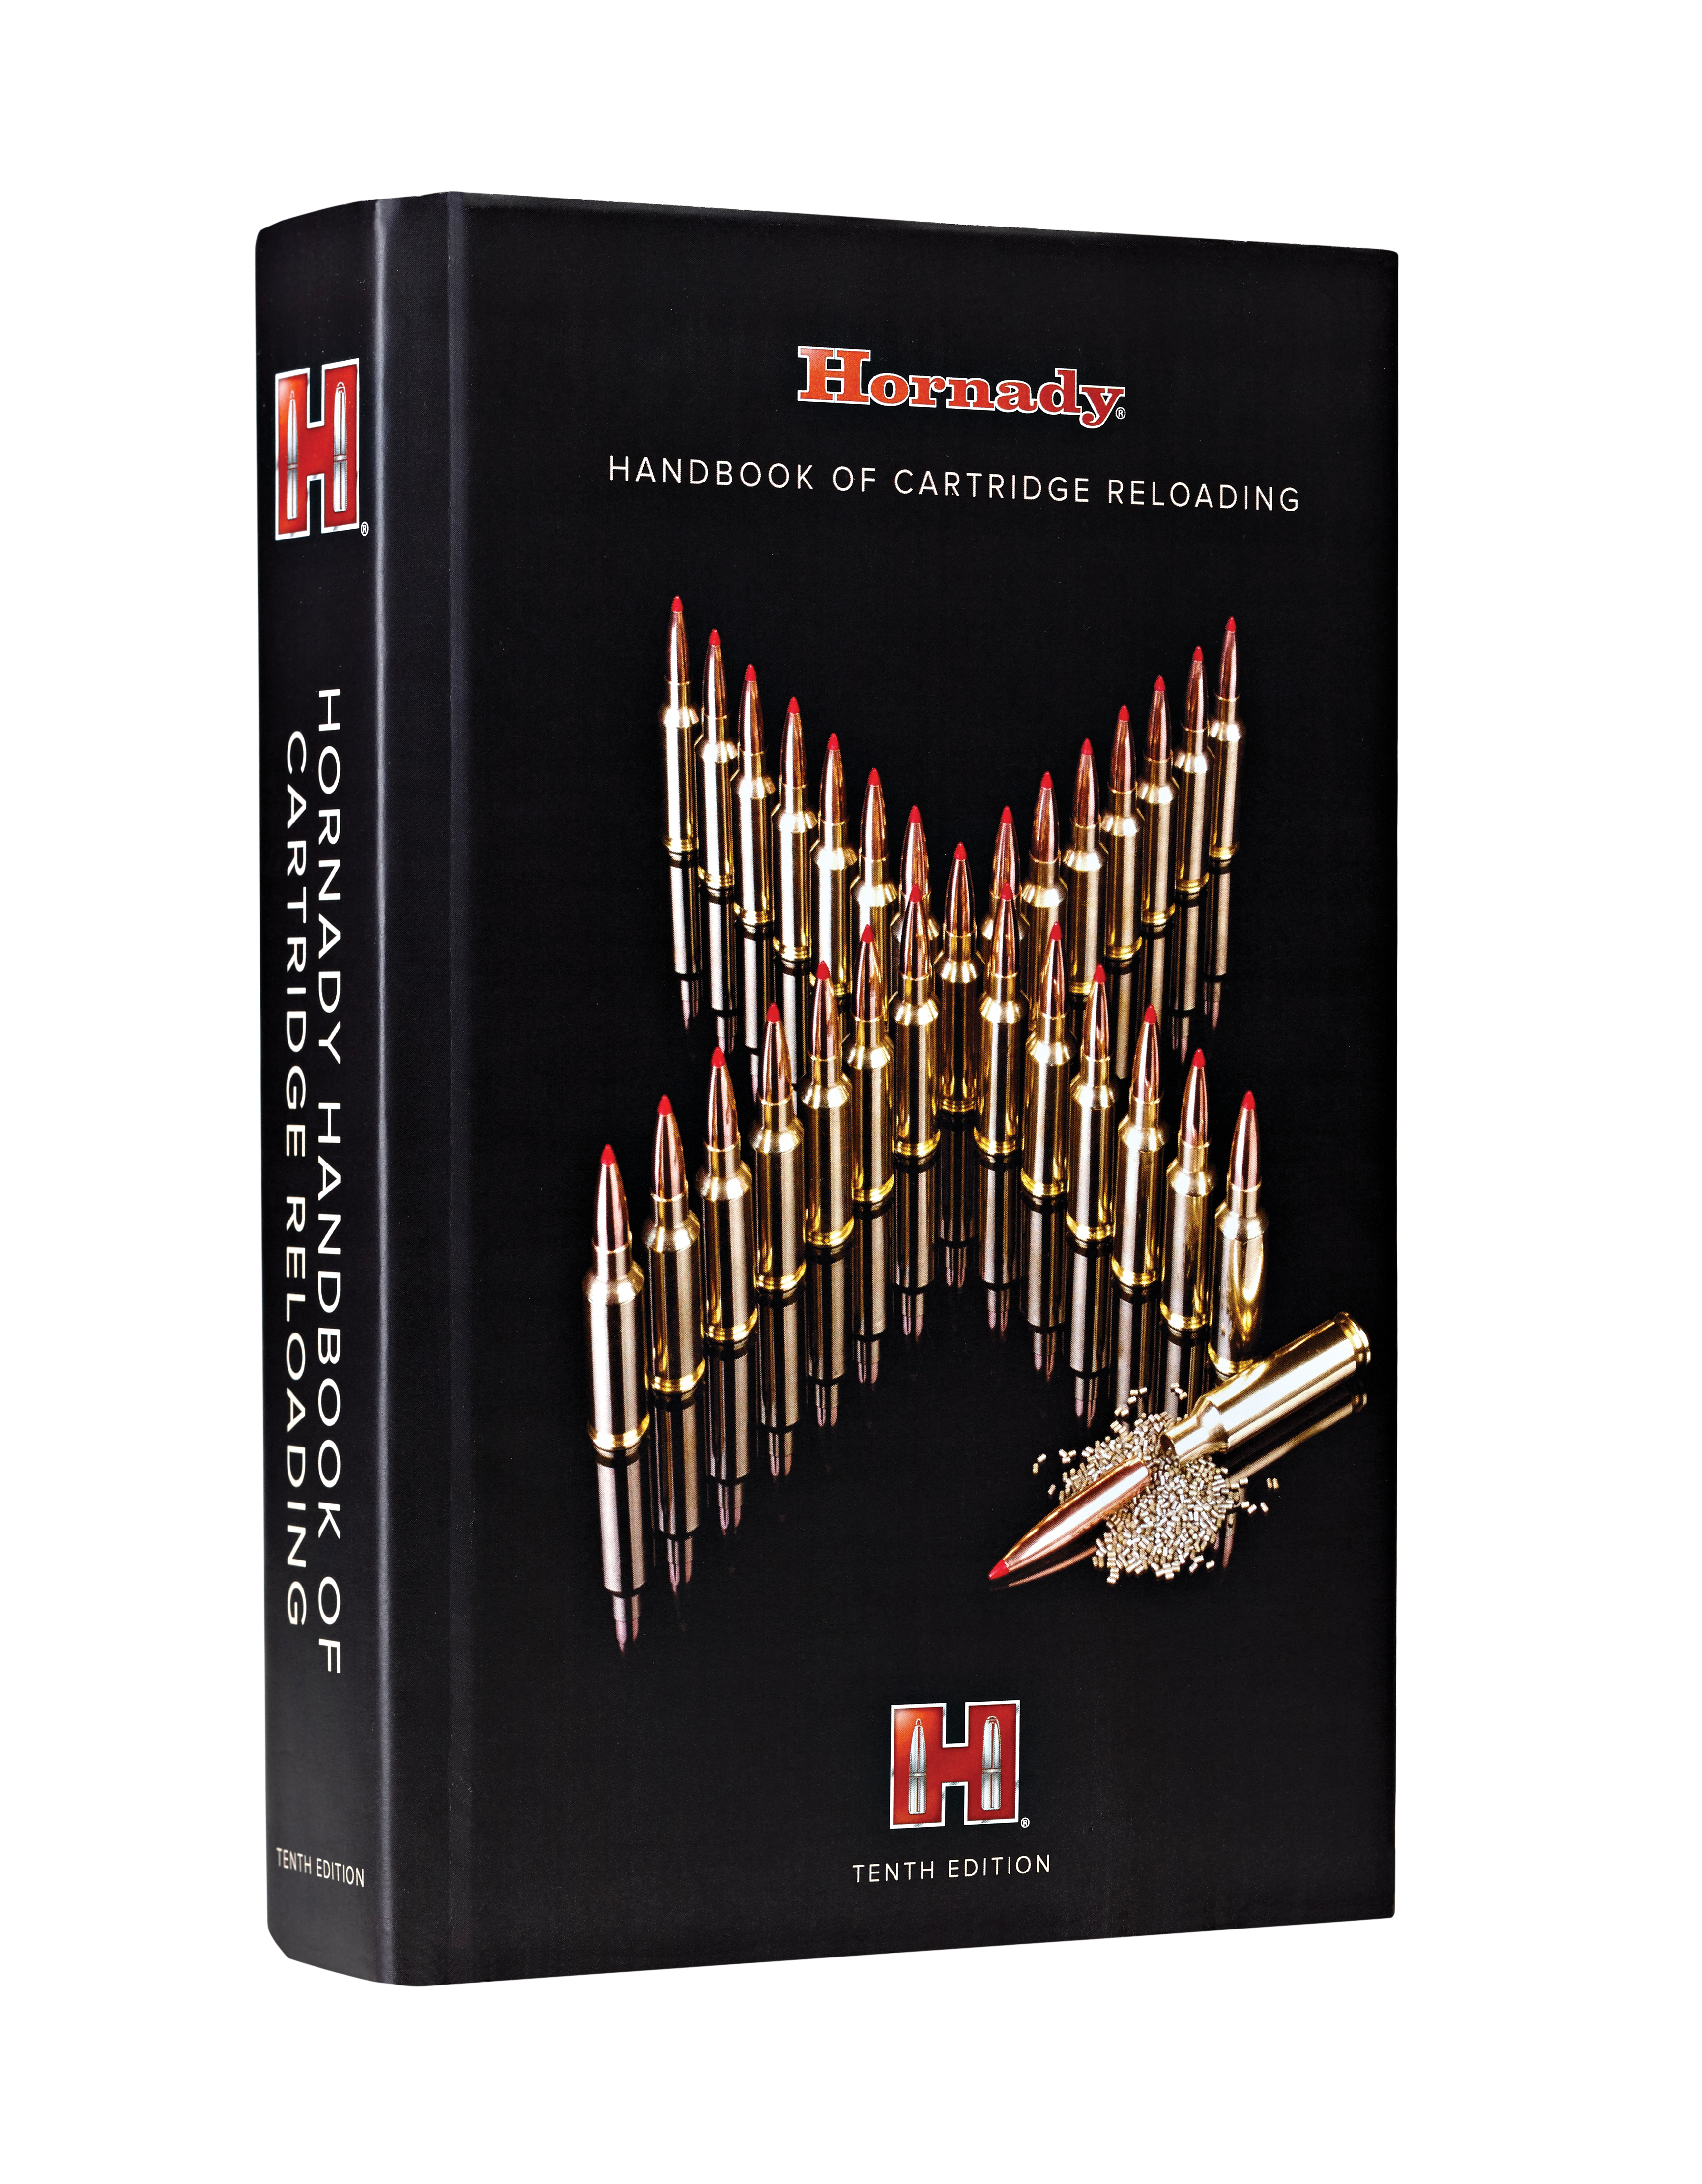 Hornady Handbook of Cartridge Reloading Manual - 10th Edition